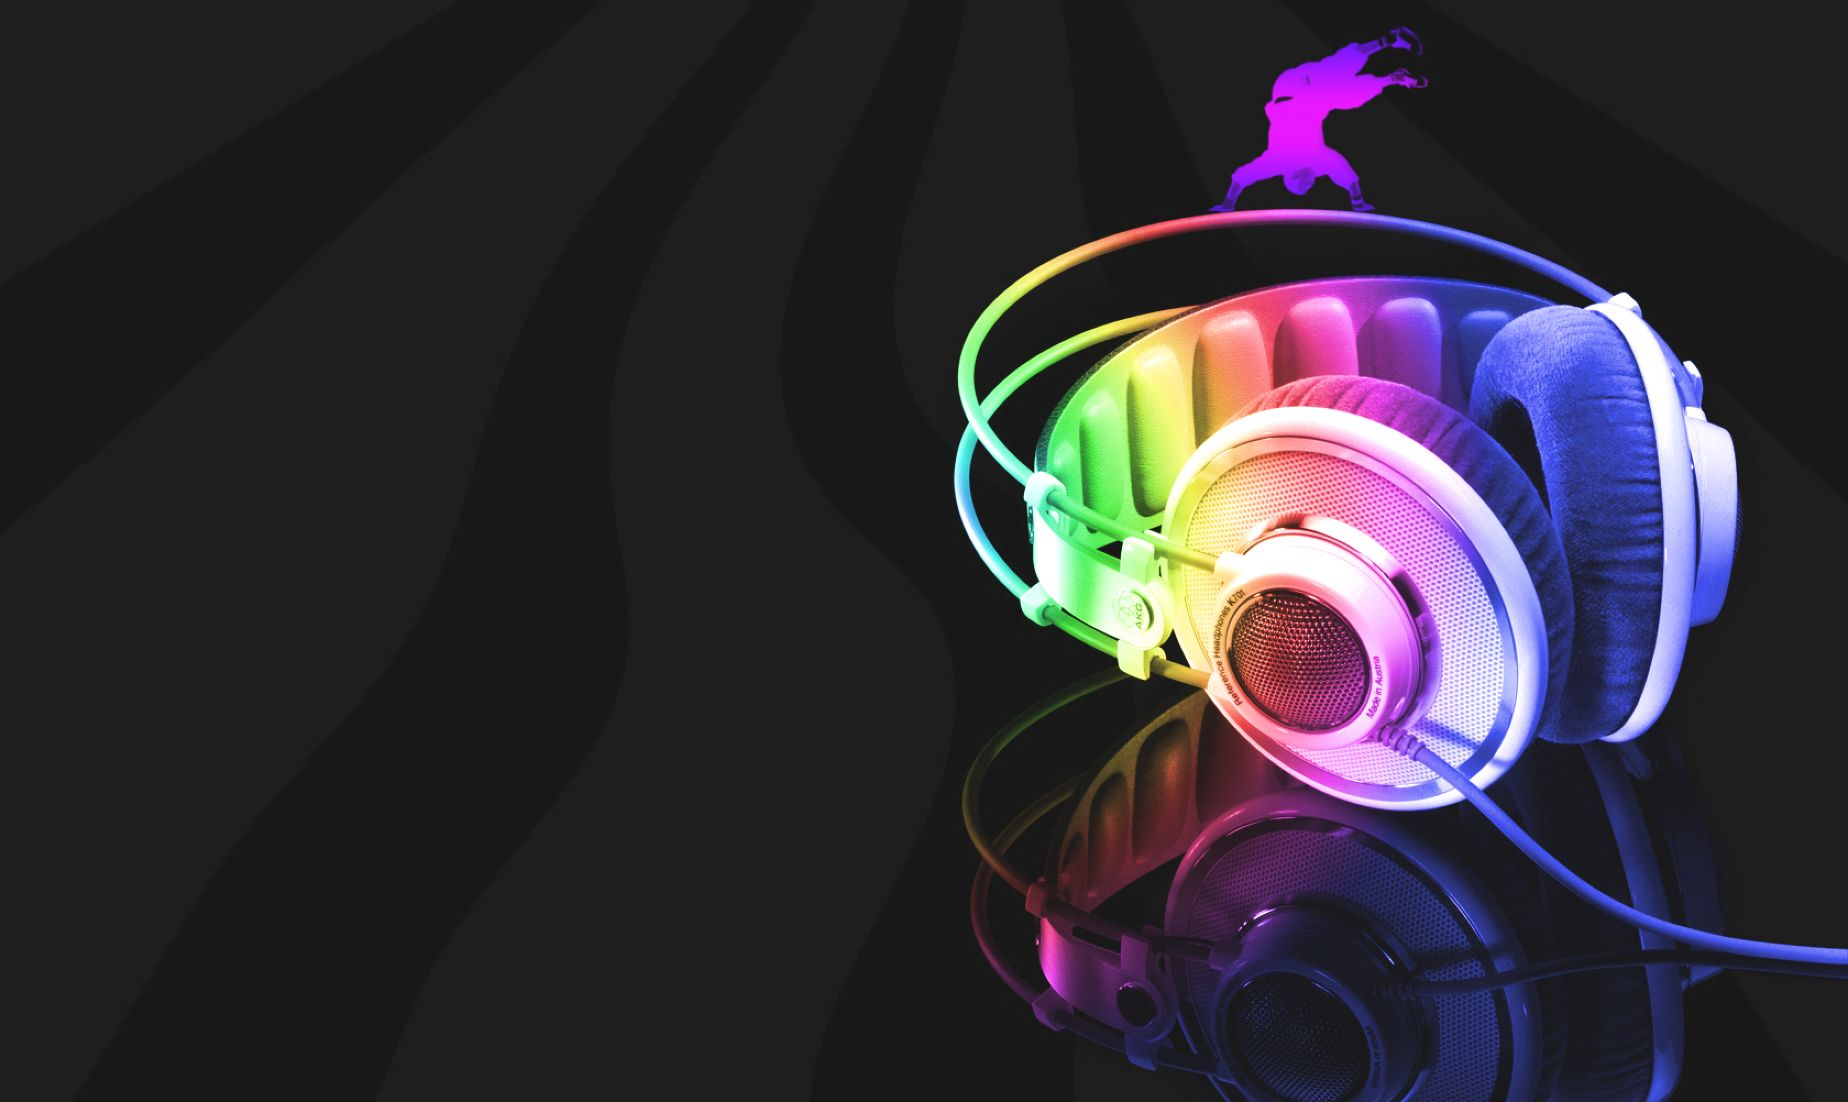 Cool 3D Headphone Music HD for Mobile Wallpaper: Desktop ...